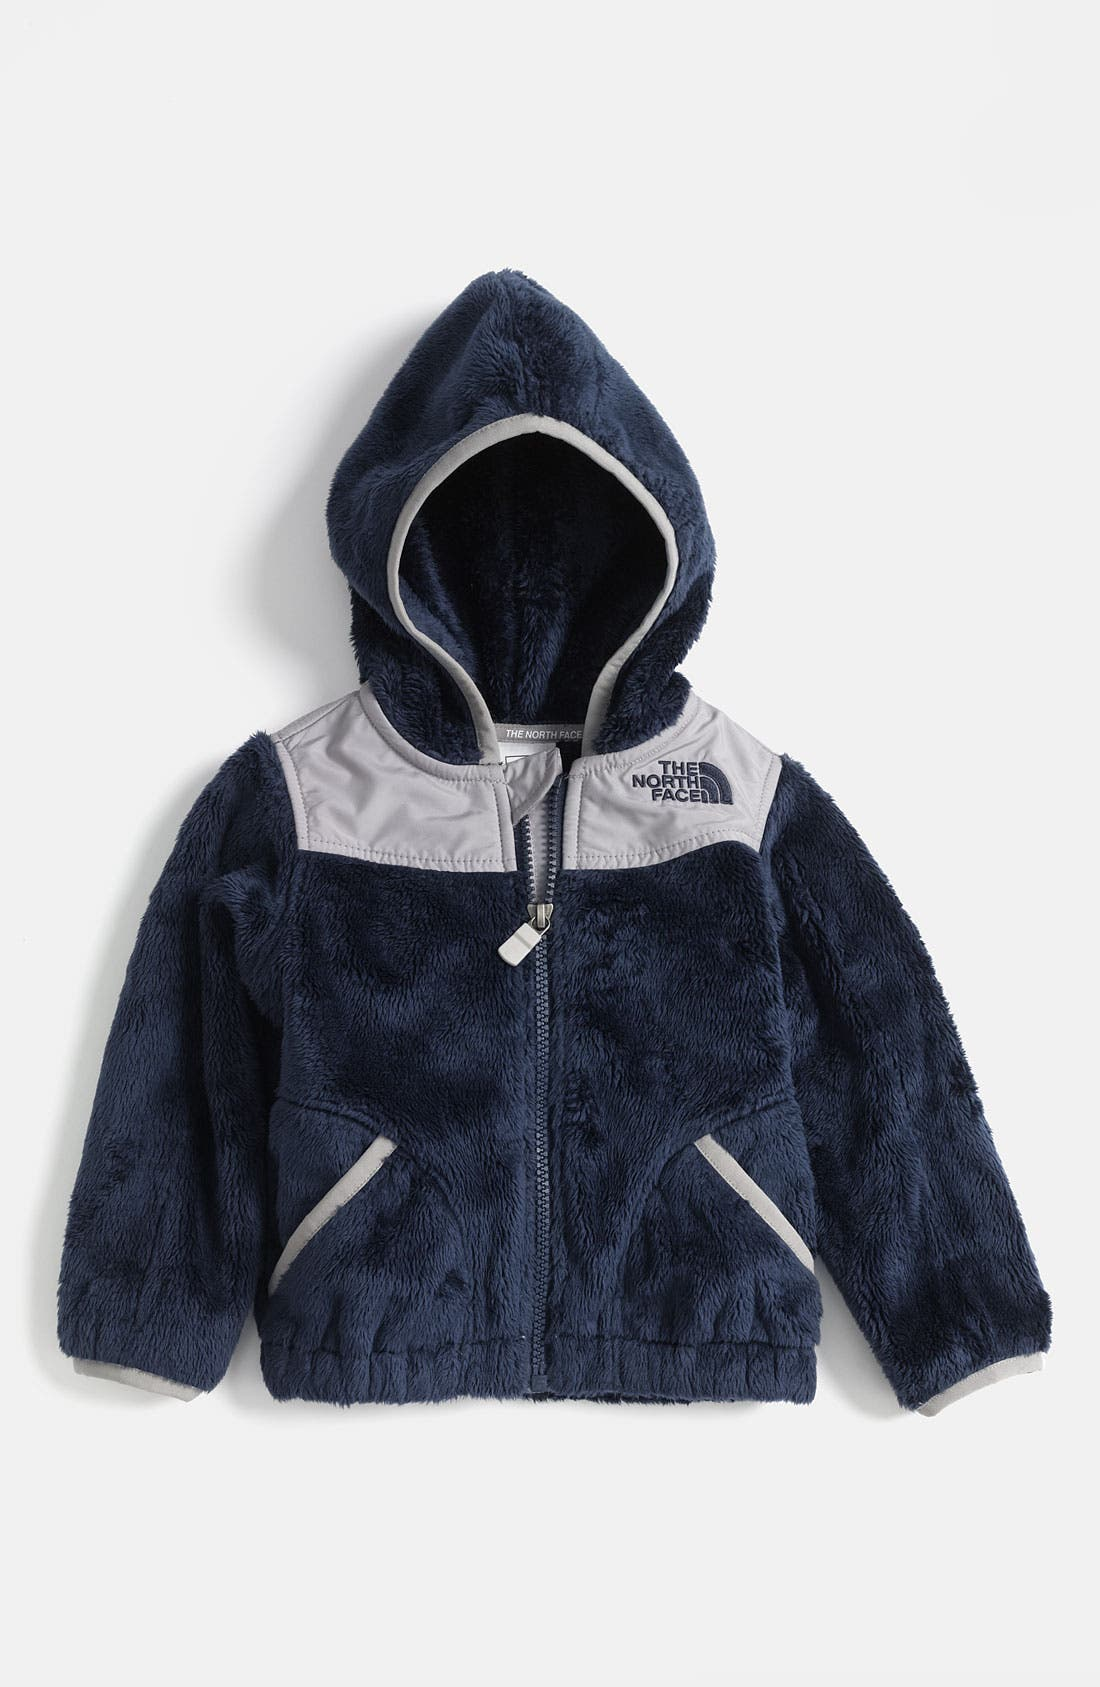 Main Image - The North Face 'Oso' Hoodie (Baby Boys) (Nordstrom Exclusive)